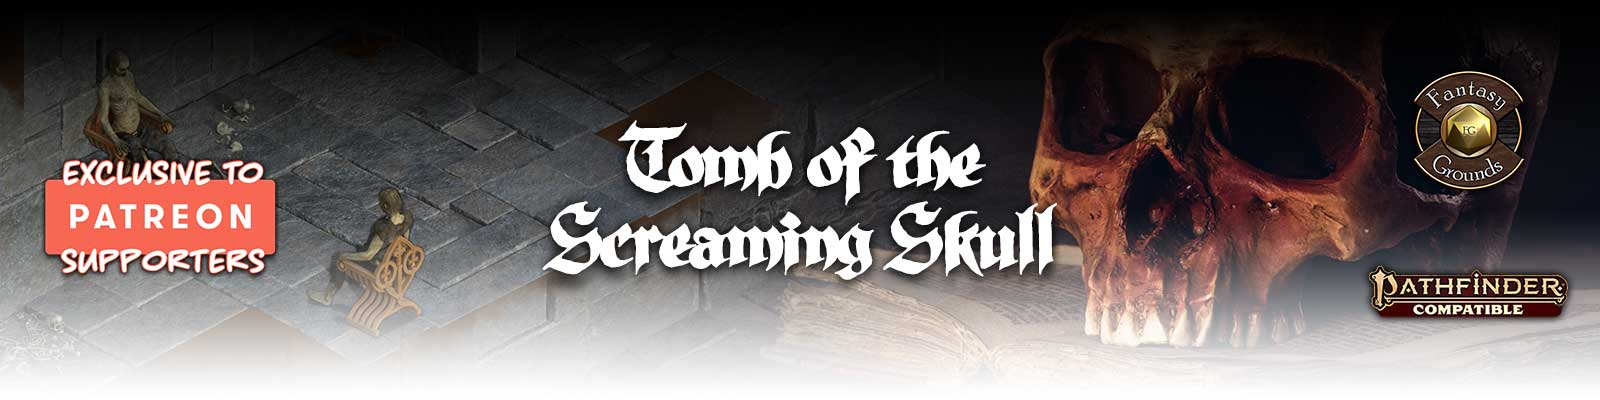 Tomb of the Screaming Skull